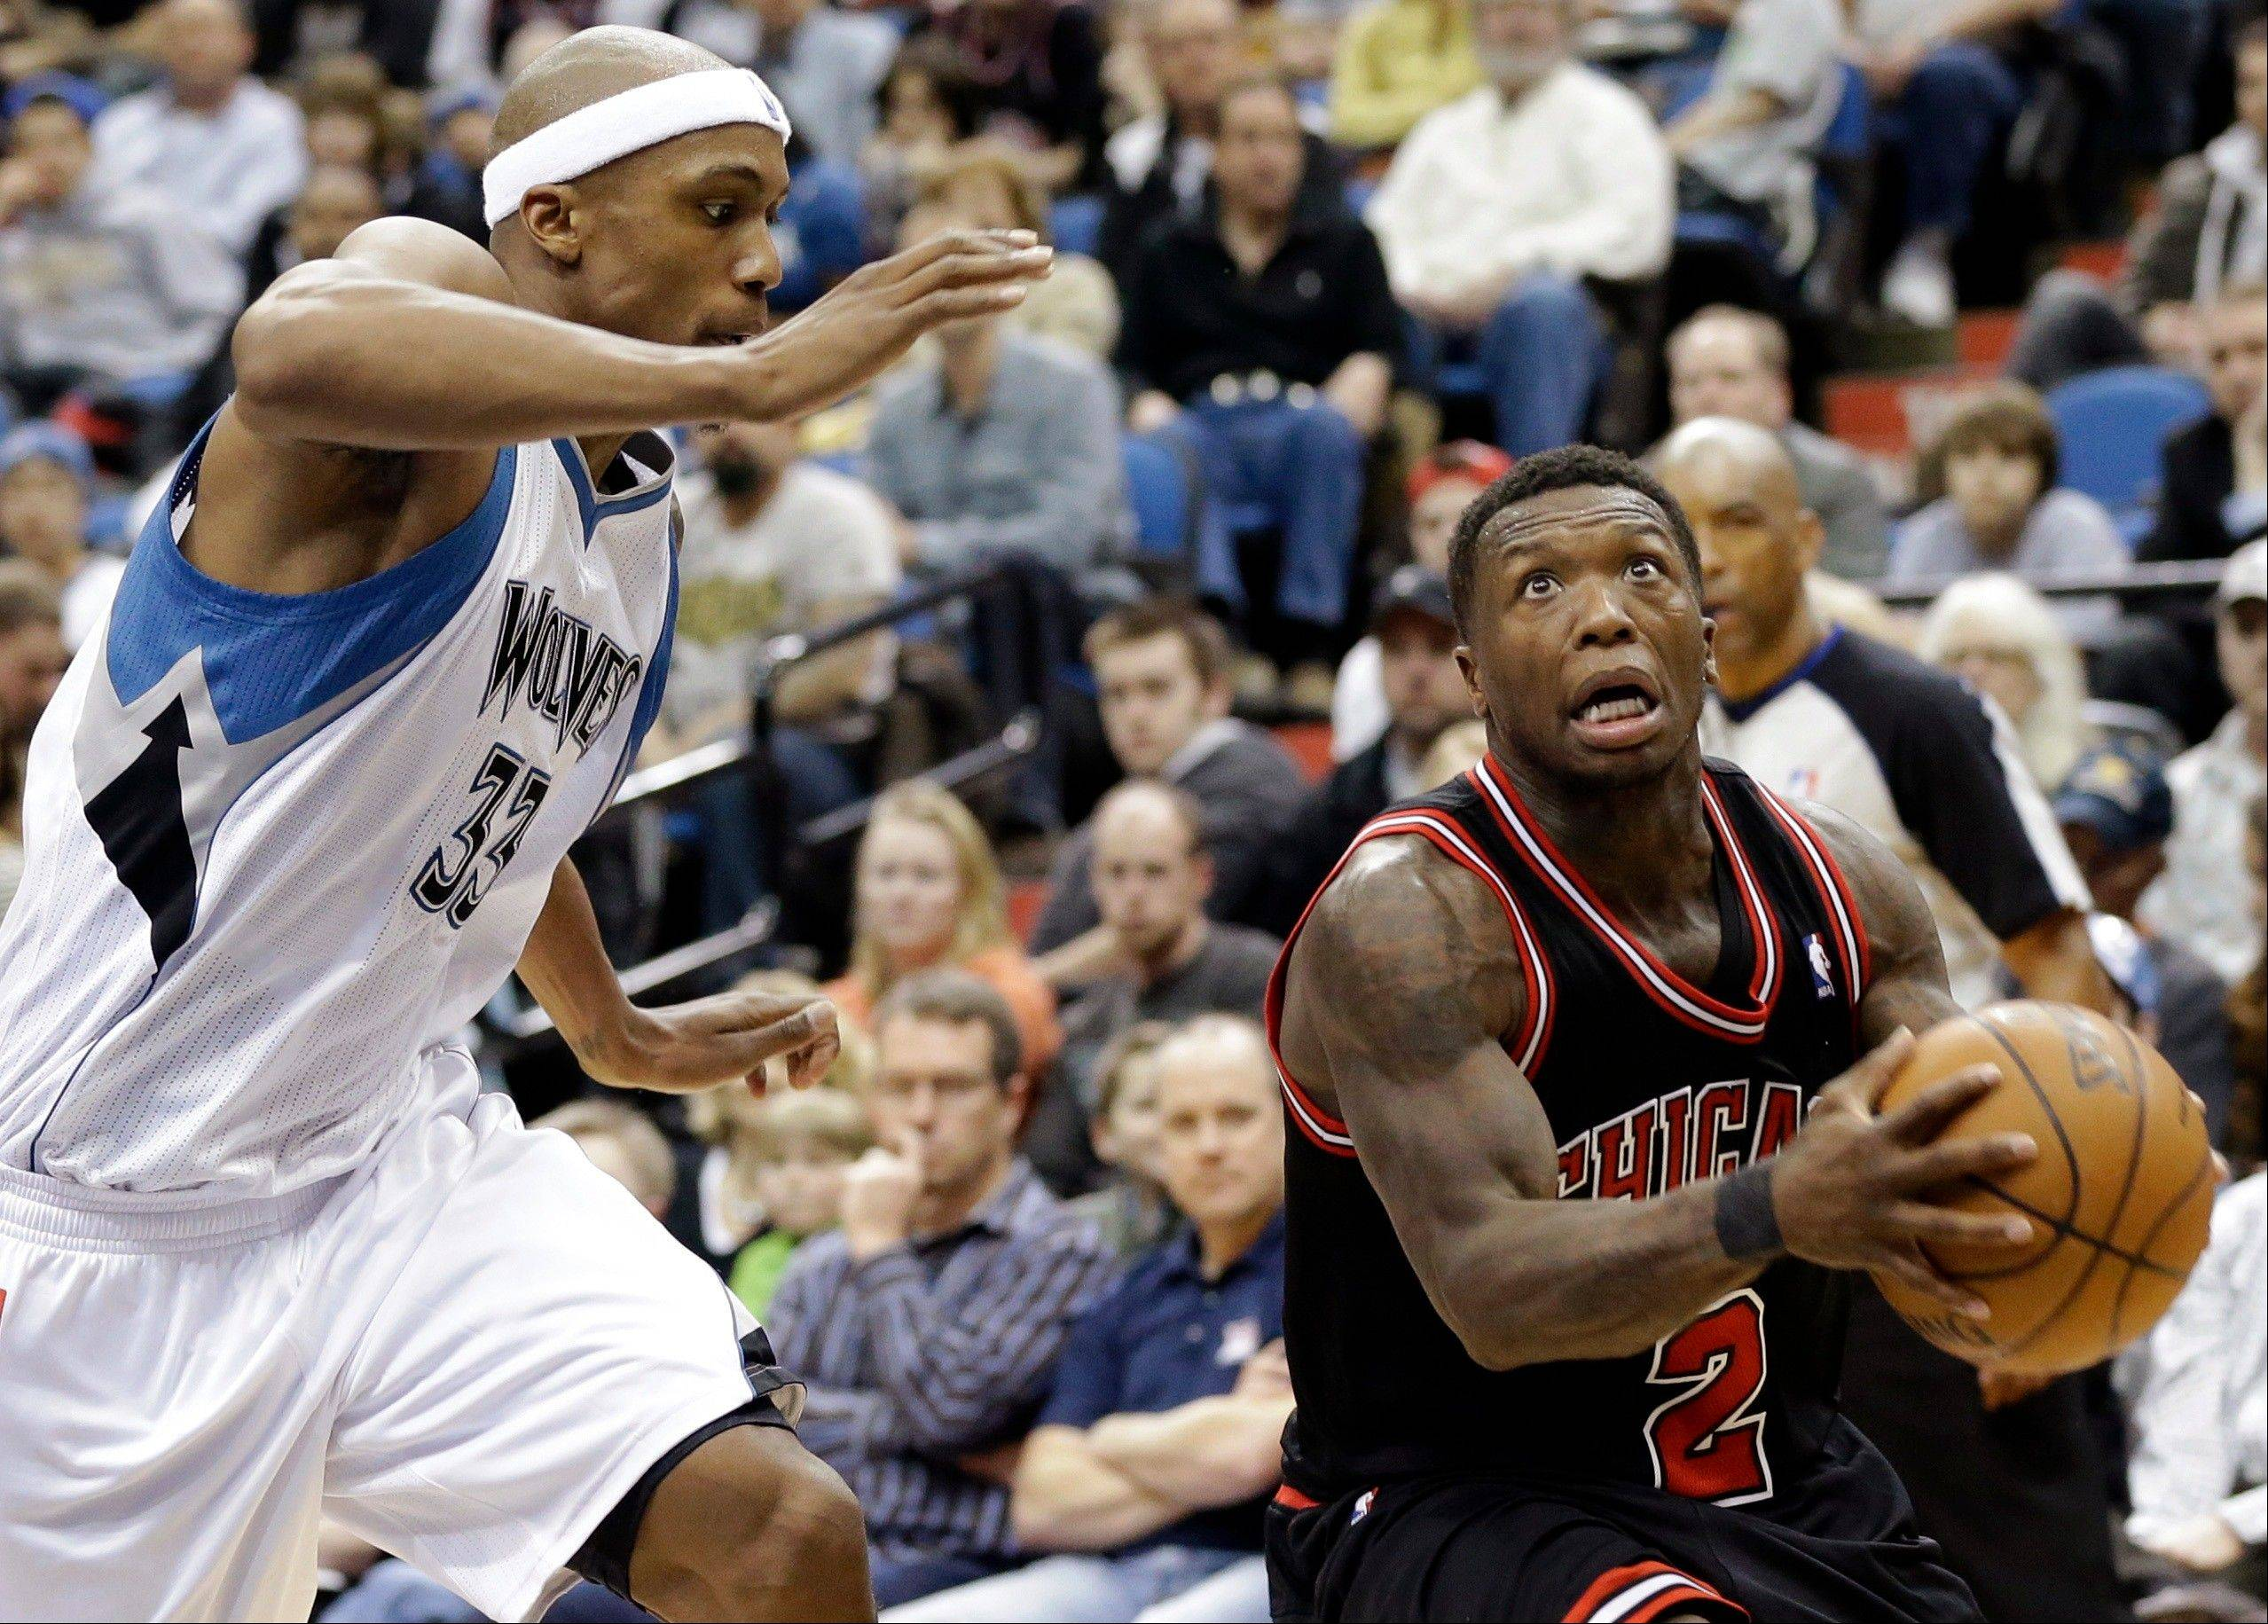 Chicago Bulls' Nate Robinson, right, drives to the basket as Minnesota Timberwolves' Dante Cunningham pursues in the second half of an NBA basketball game, Sunday, March 24, 2013, in Minneapolis. The Bulls won 104-97.